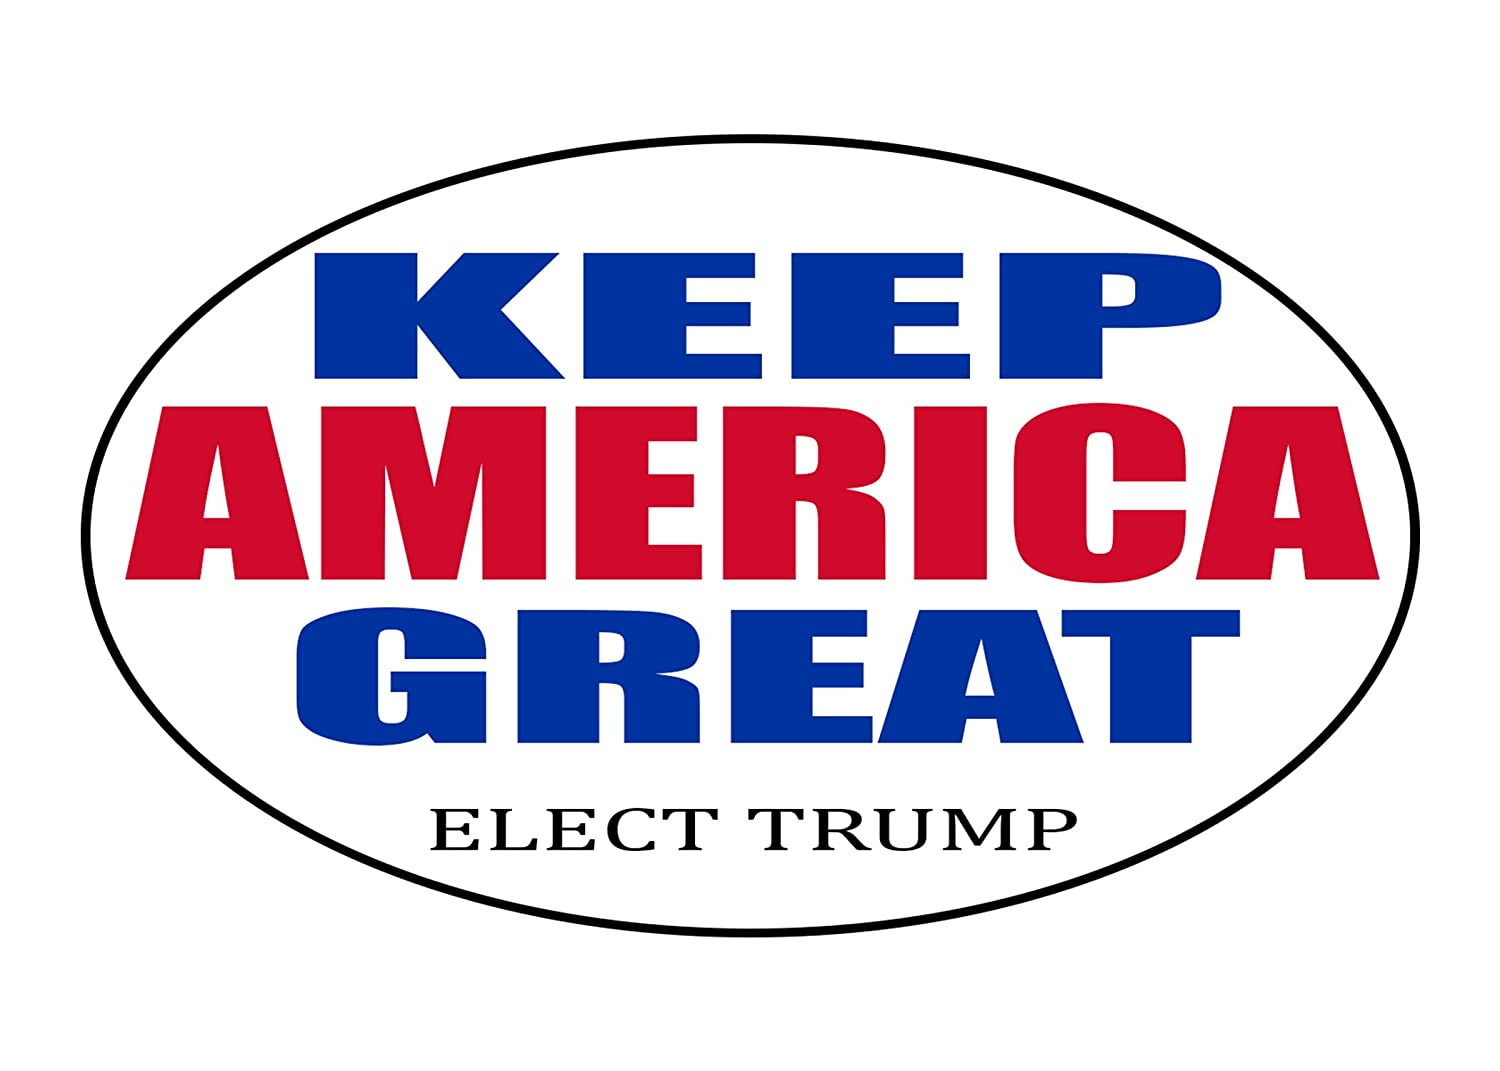 Keep America Great President Donald Trump 2020 Election 5x3 Inch Oval Bumper Sticker Car Decal Conservative Republican